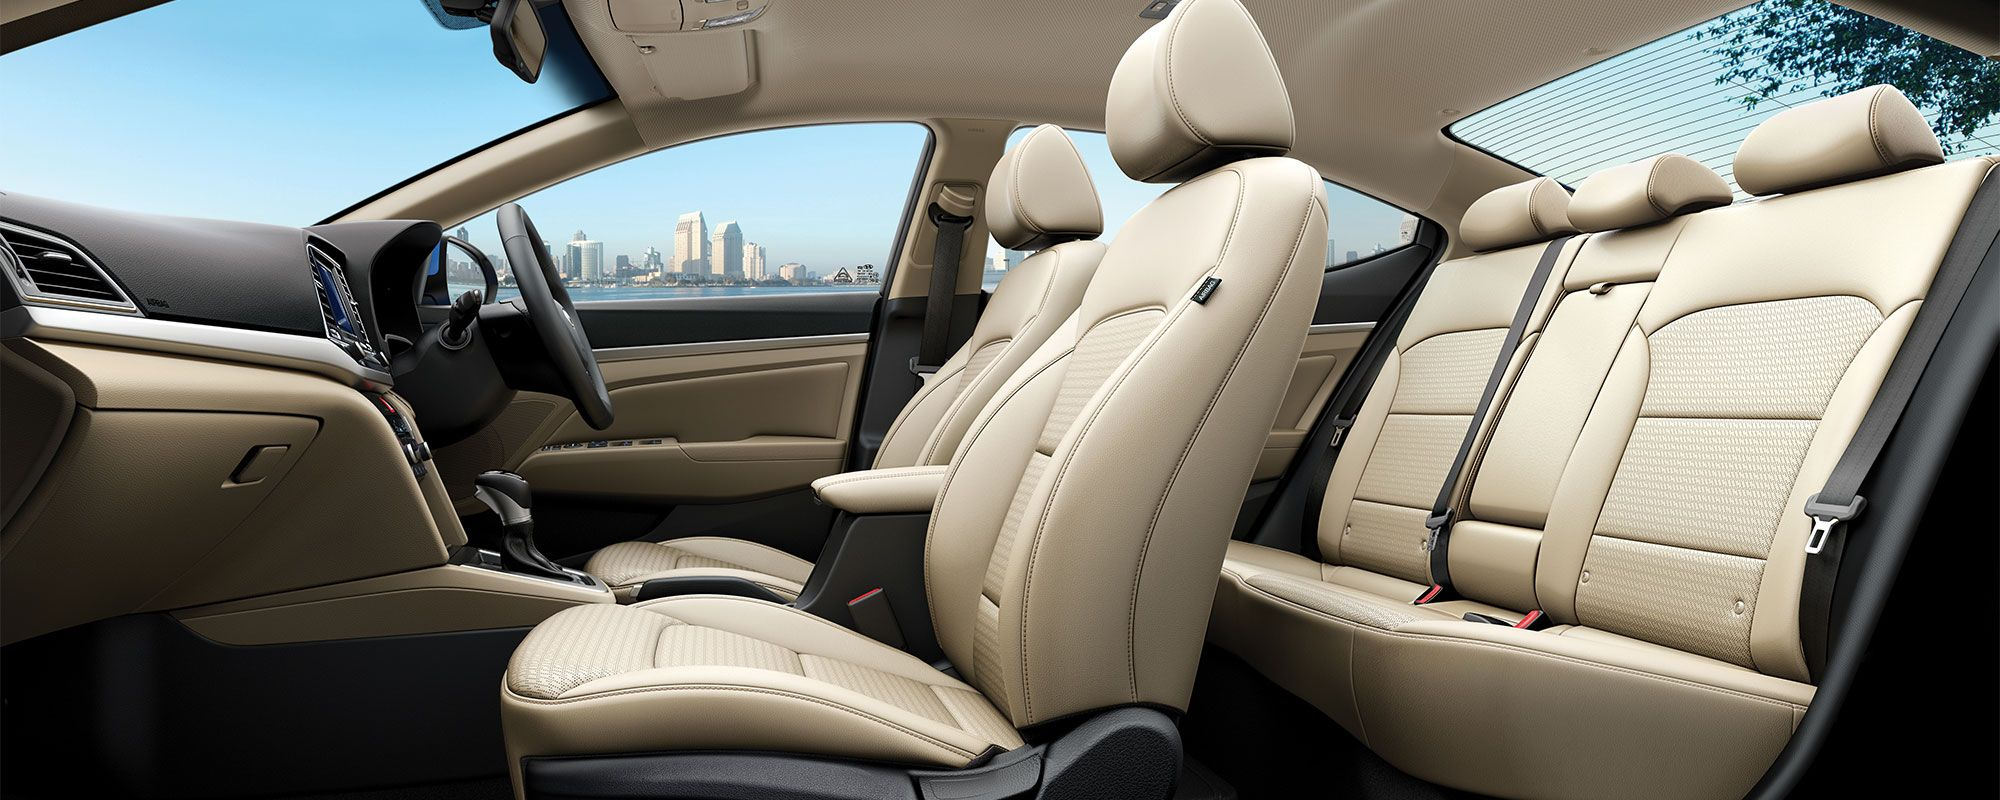 Stretch Out And Enjoy The Spacious, Well Appointed Interior Of The #Hyundai  #